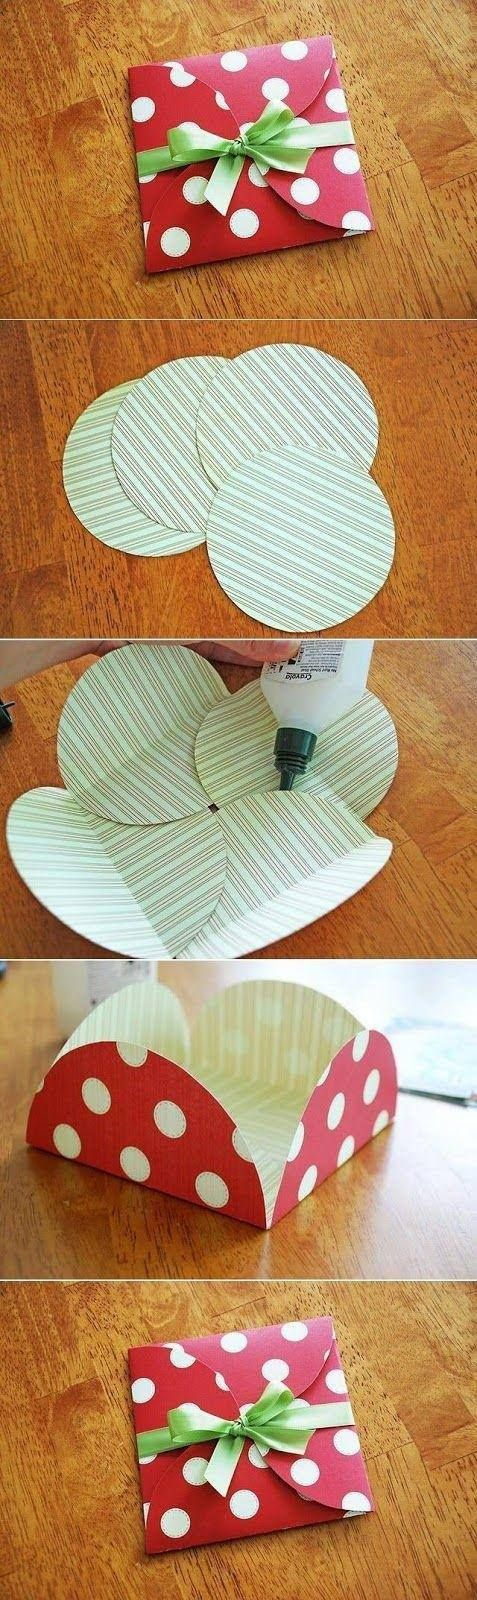 Make this very simple envelope letter made out of cutout circles for a small note for your bestie or even you Mom! If you don't have glue, tape should work, too Tie it up with a cute ribbon or a cute sticker to close the envelope Enjoy!